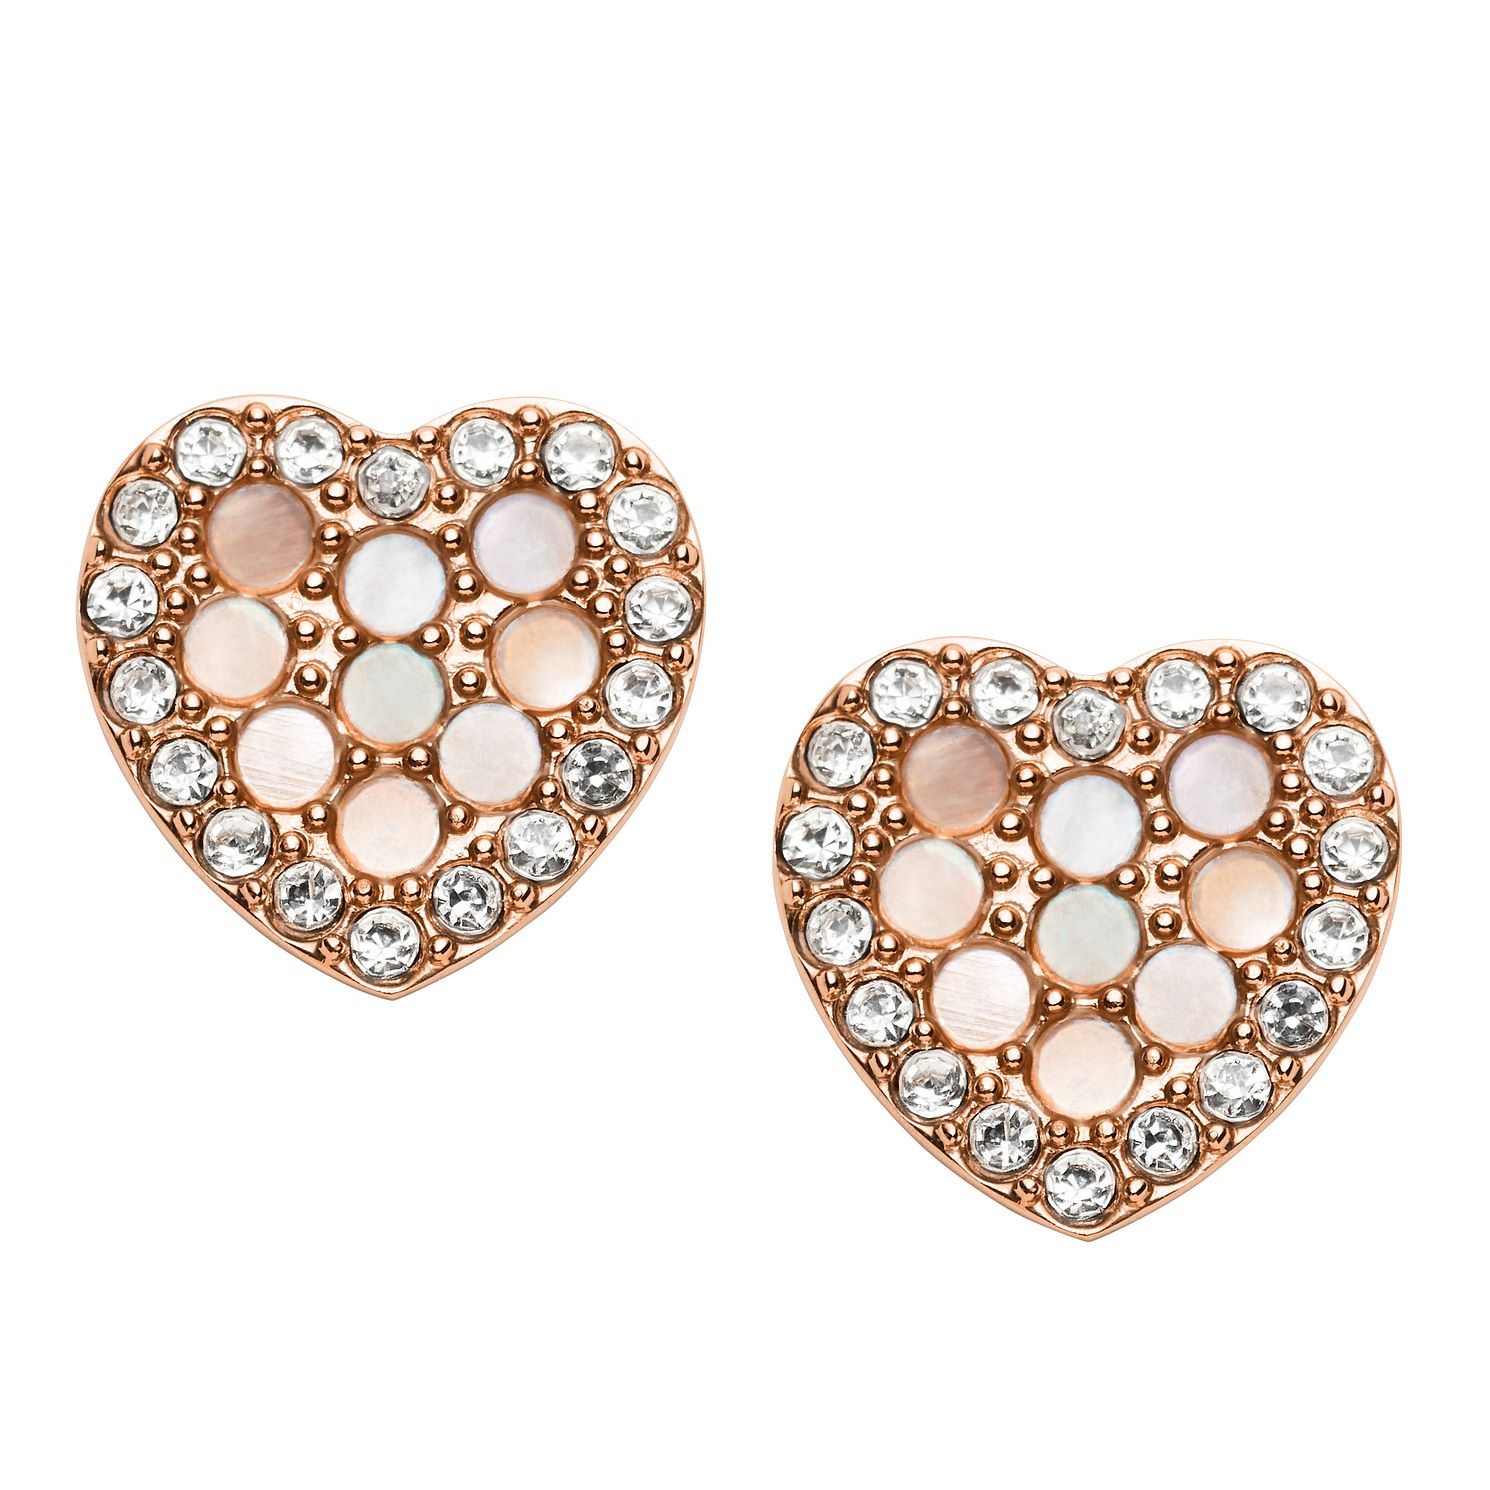 Fossil Rose Gold Tone Cubic Zirconia Glitz Heart Earrings - Product number 2358859